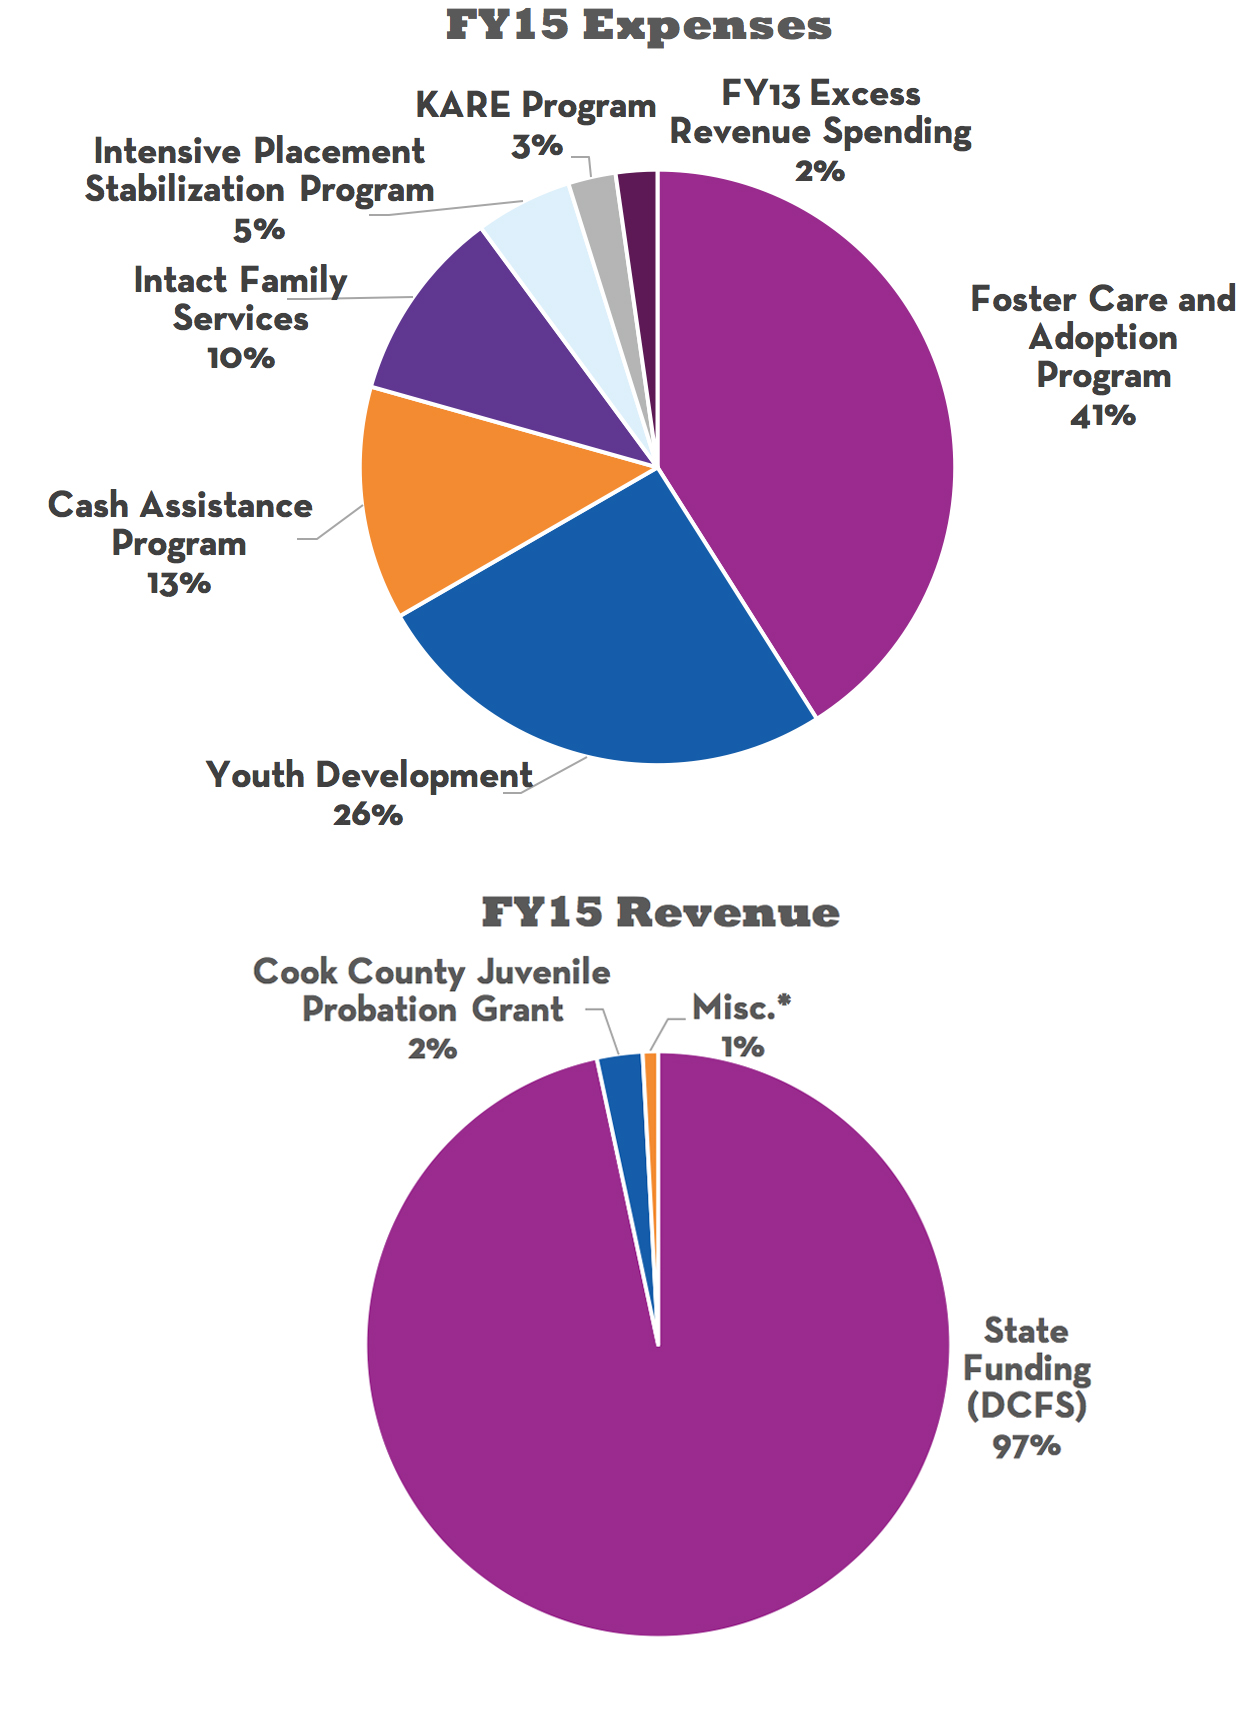 Kaleidoscope Financials - FY15 Expenses & Revenue Pie Charts